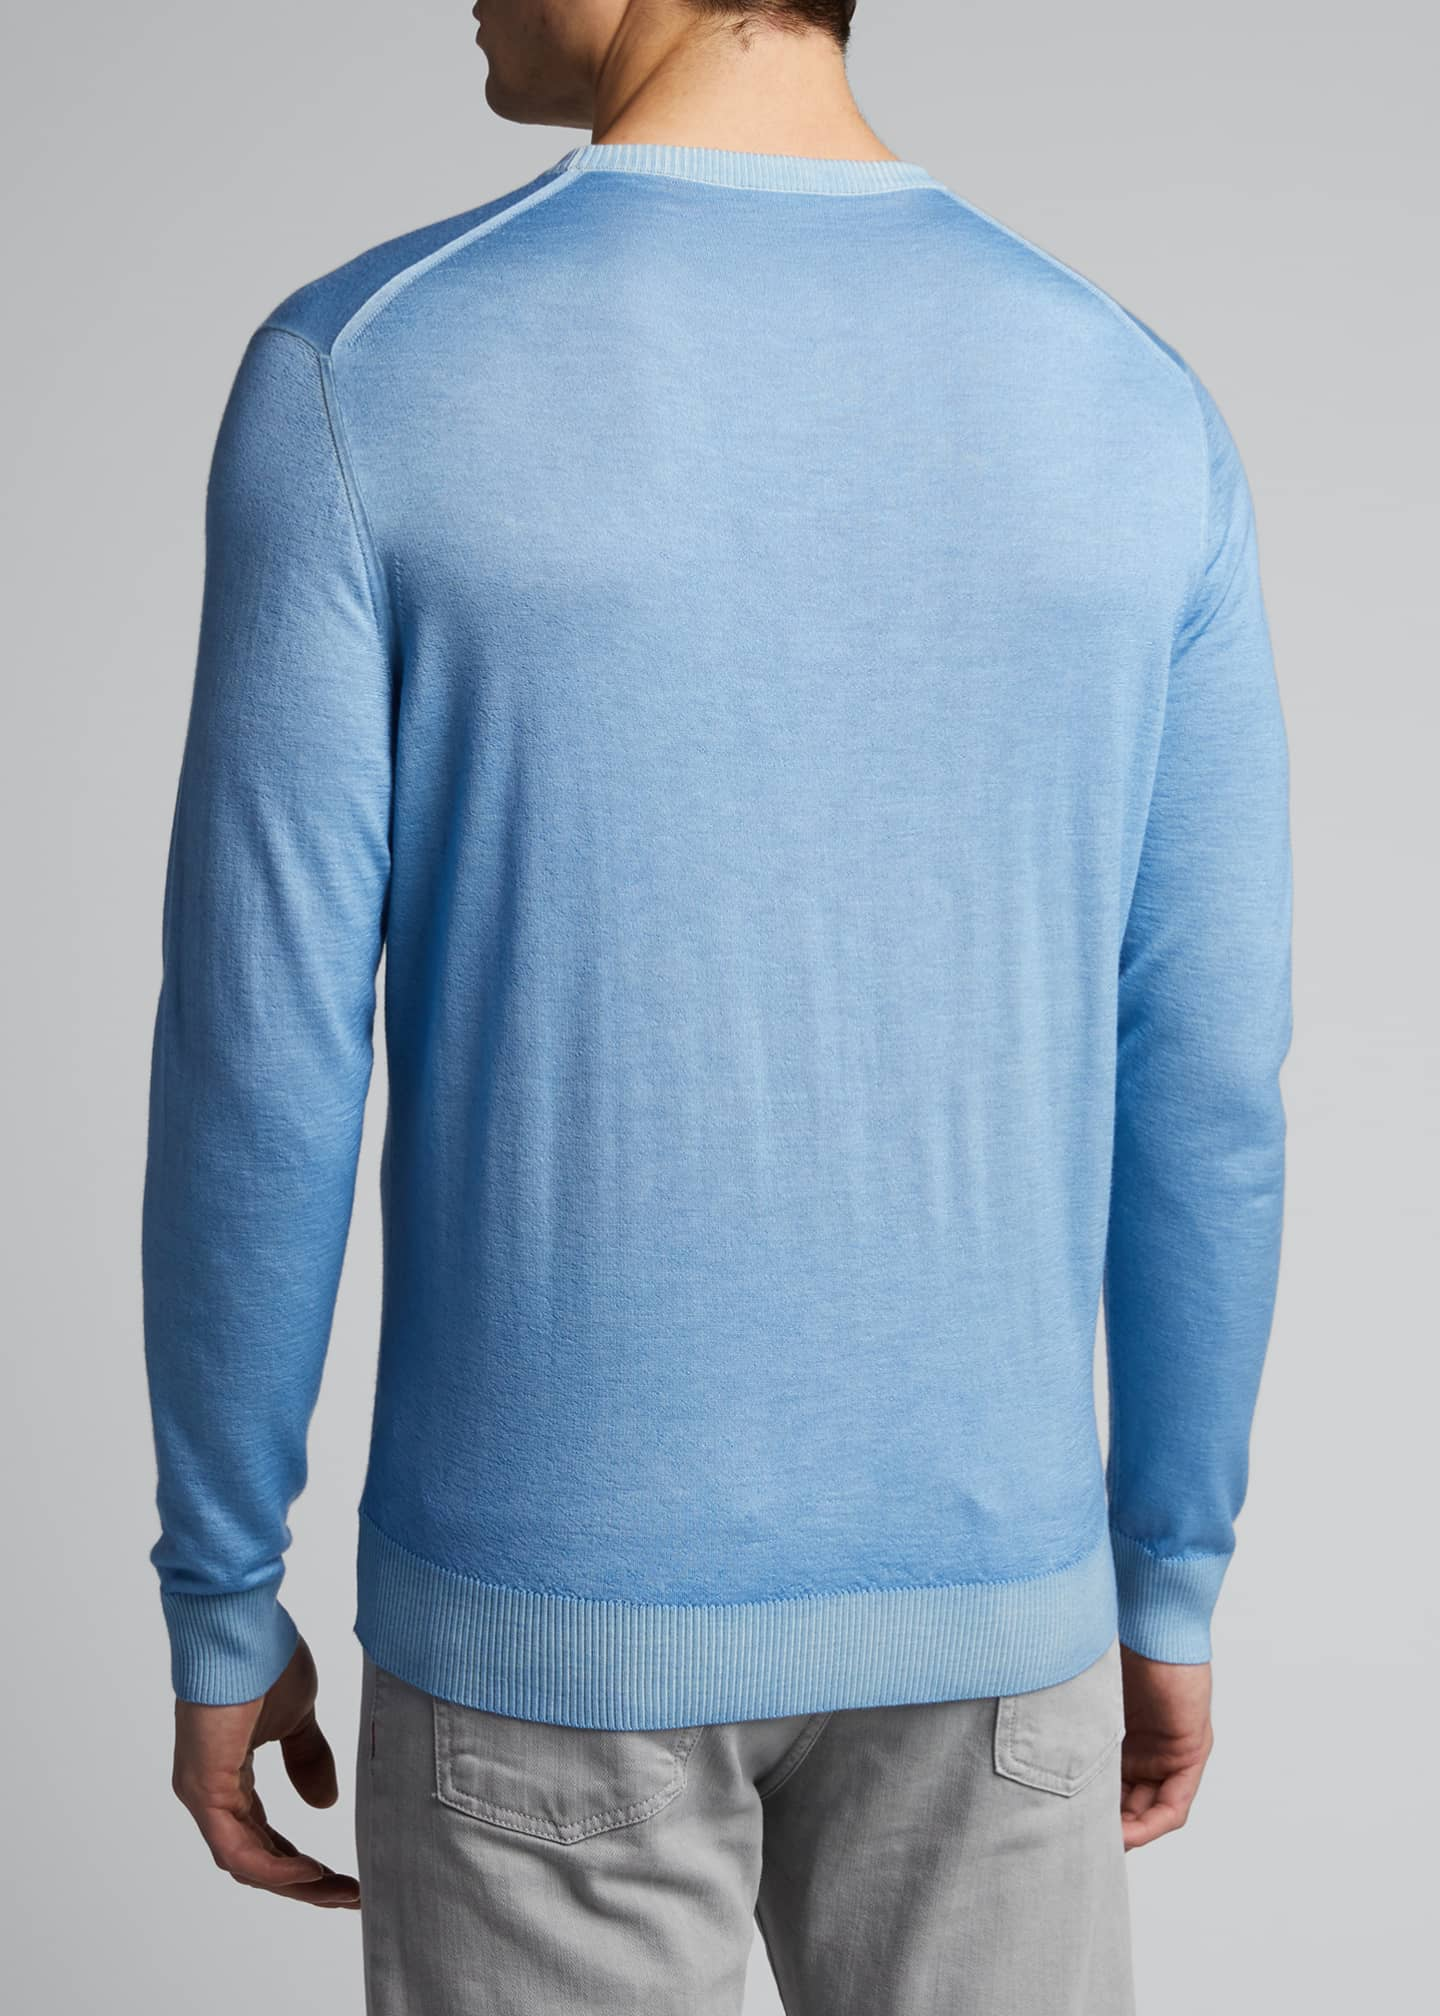 Image 2 of 5: Men's Washed Cashmere-Cotton Sweater